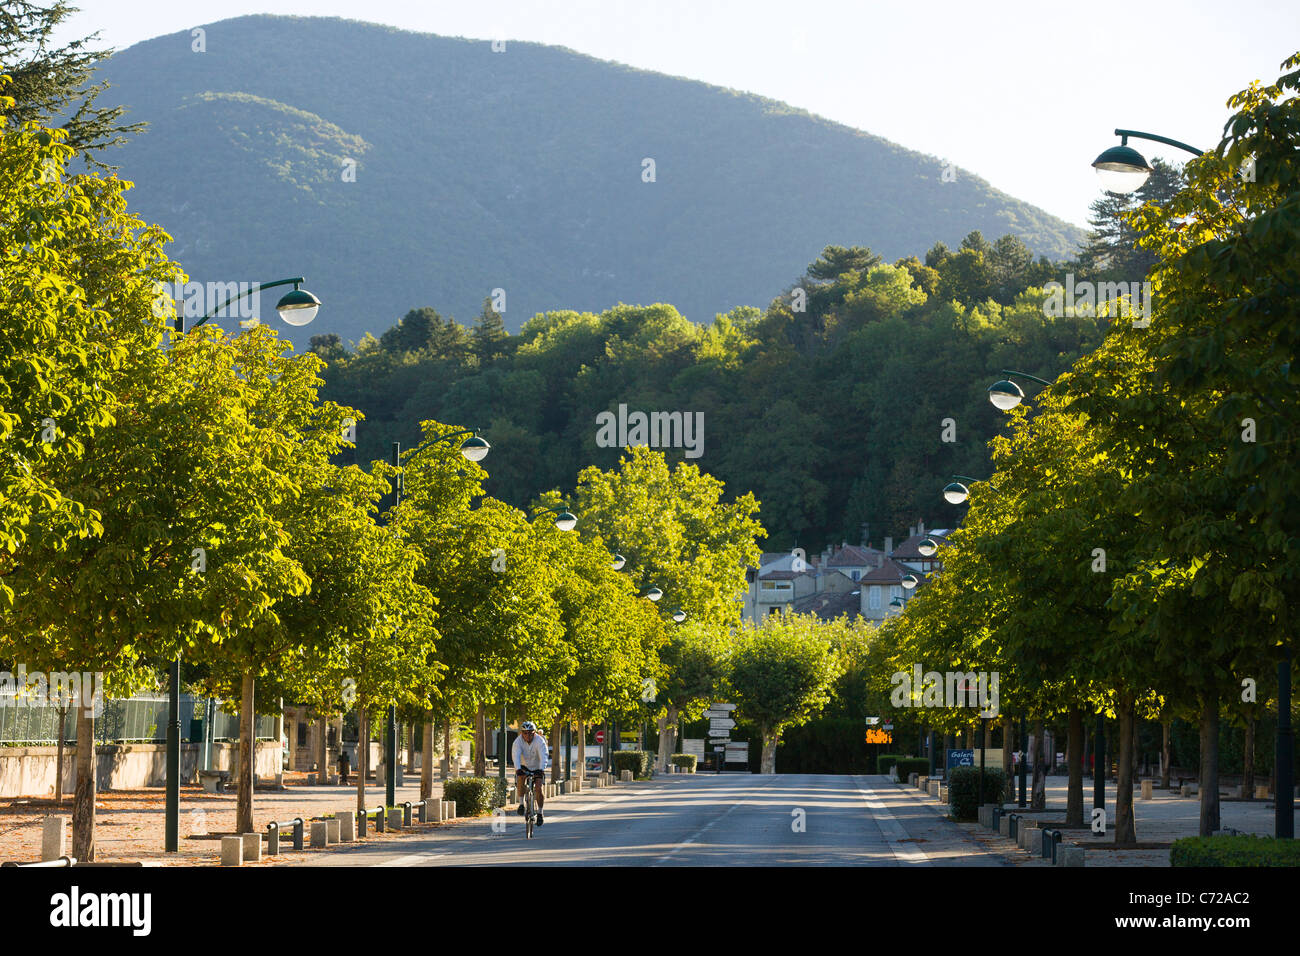 The Allée des Promenades in Dieulefit in south Drome, France. - Stock Image